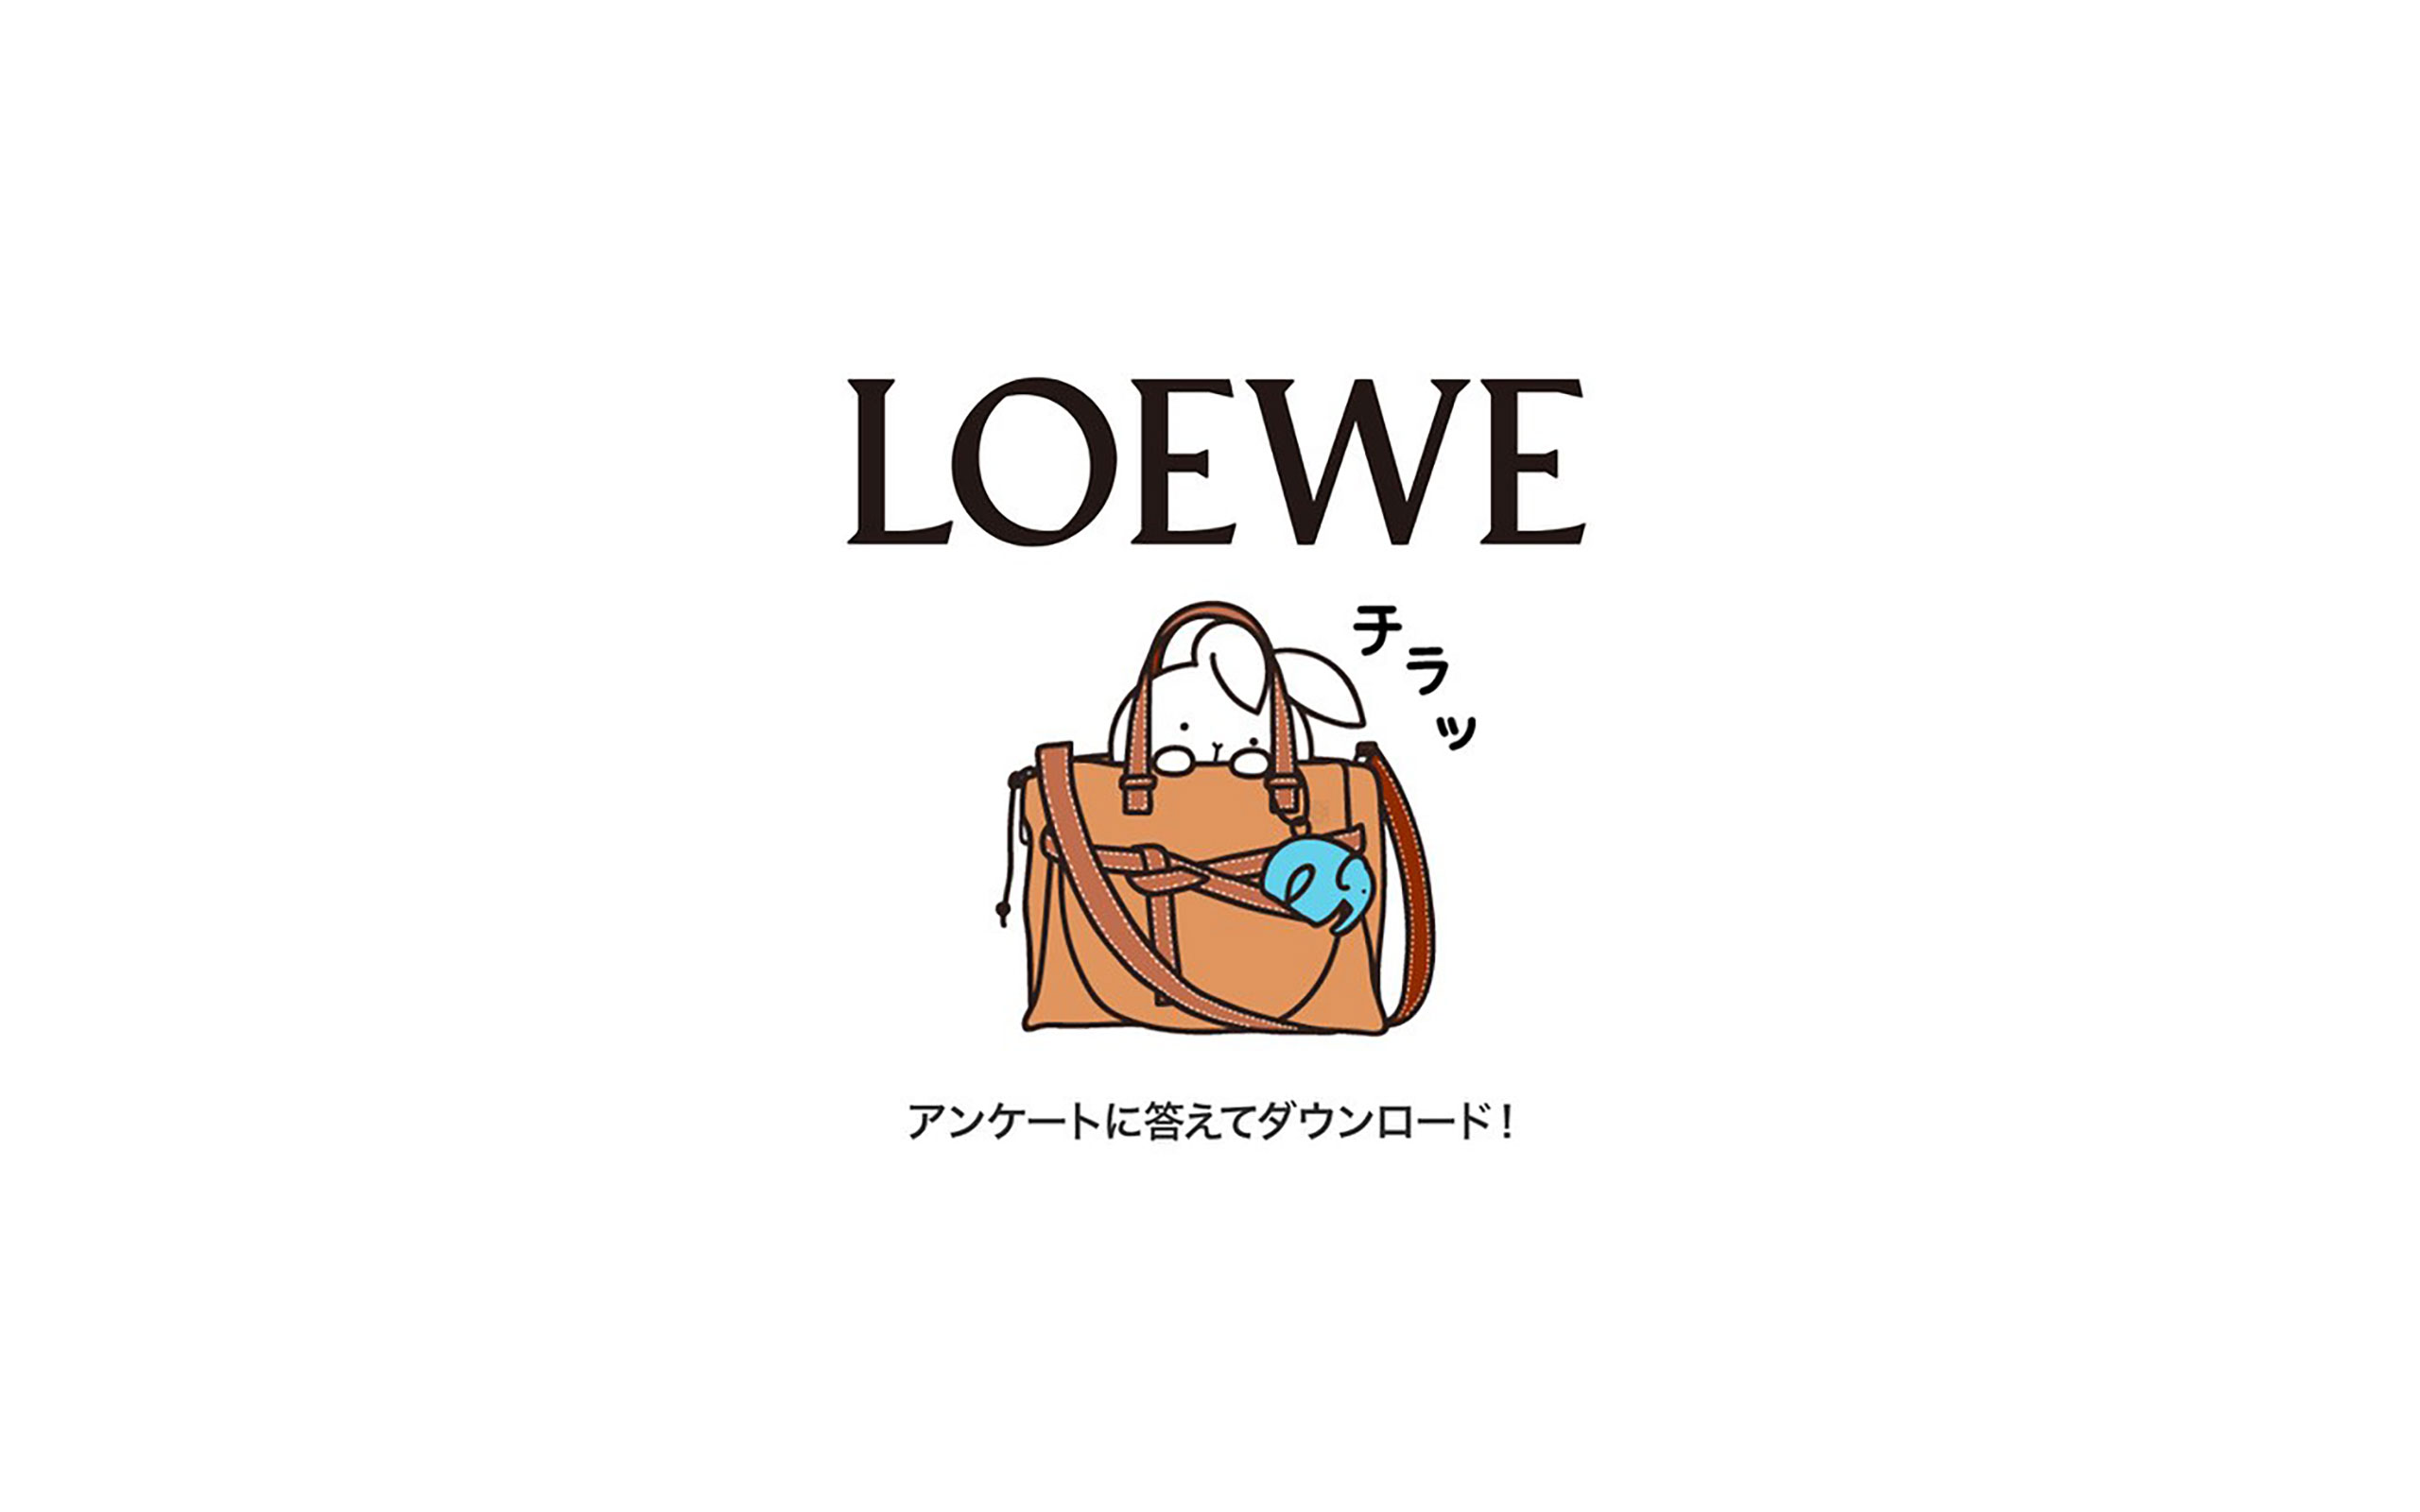 Loewe Releases Its Official Stamp On LINE